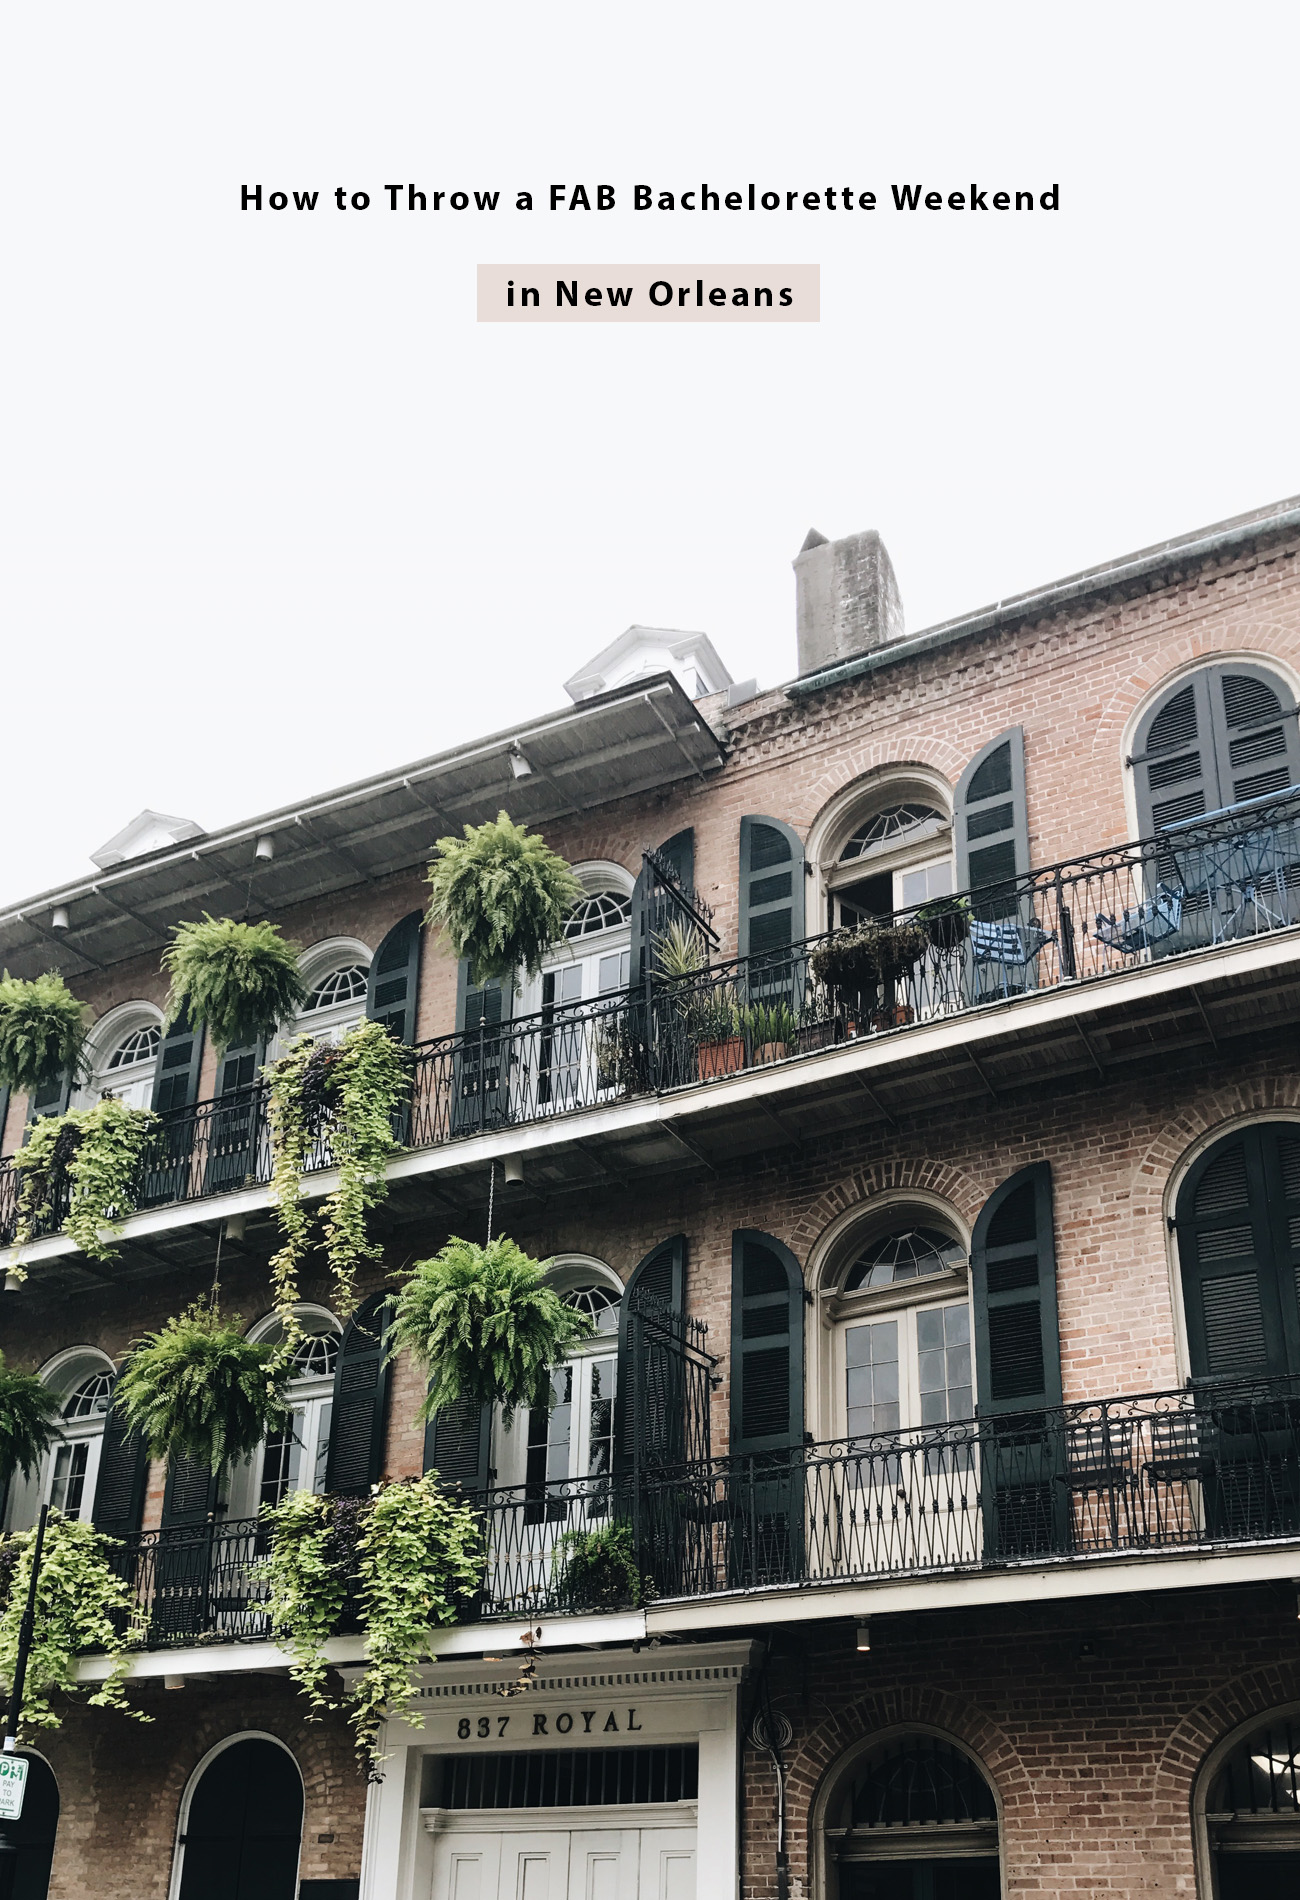 How to Throw a Fab Bachelorette Weekend in New Orleans